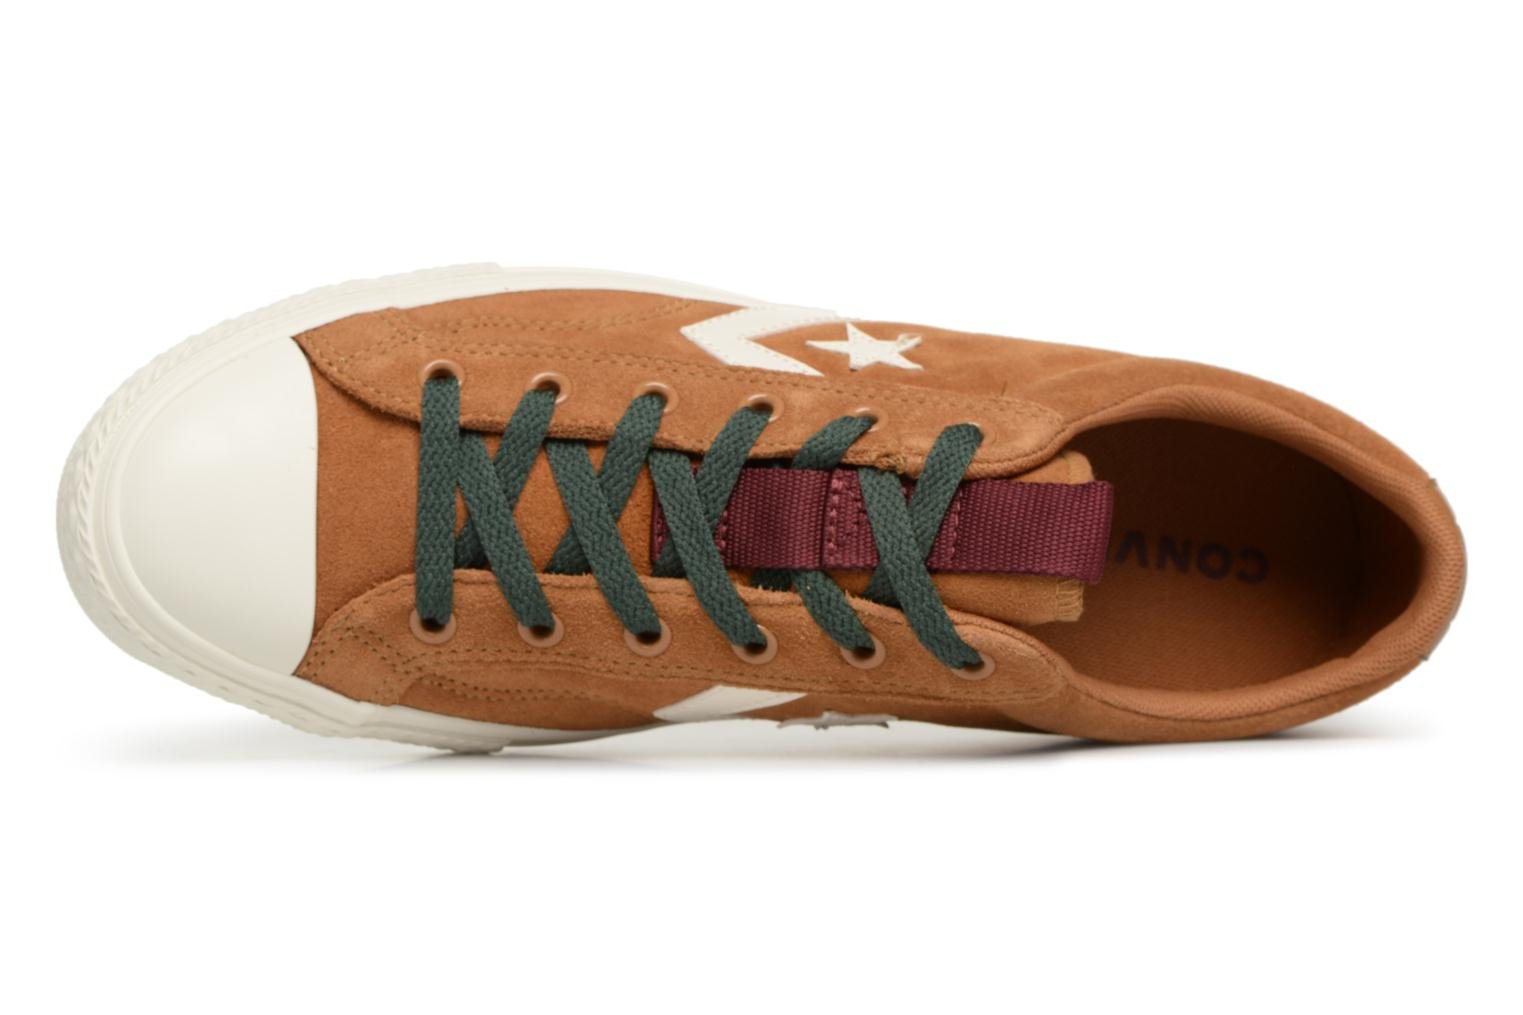 Player Ox Caramel egret Star Burnt Converse M bgfyI7vY6